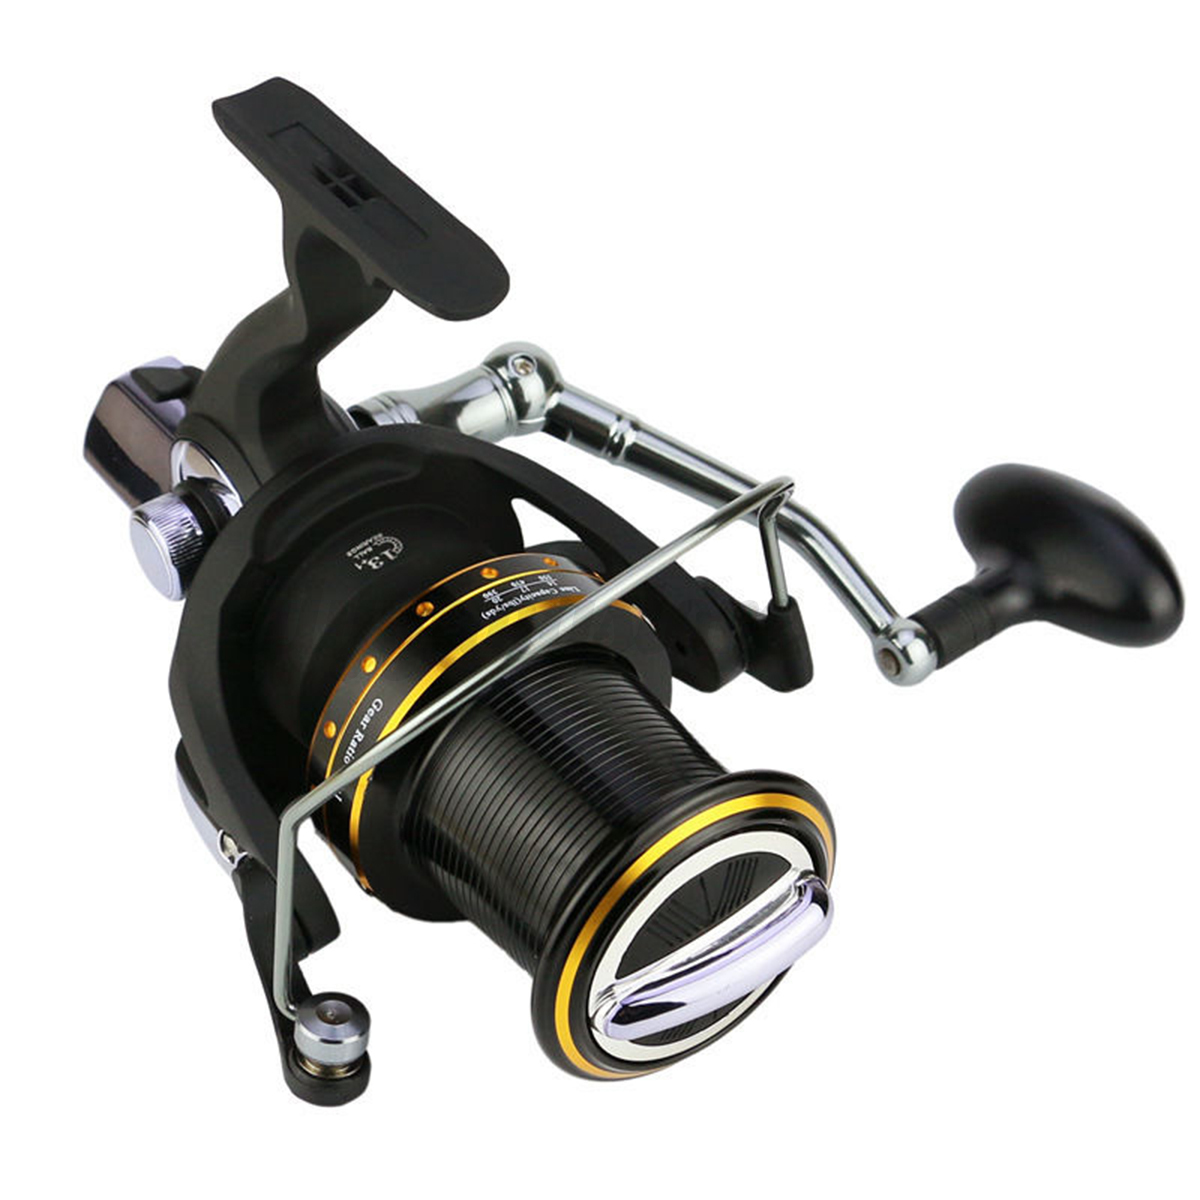 Large spinning reel long cast saltwater spinning reels for Ebay fishing reels